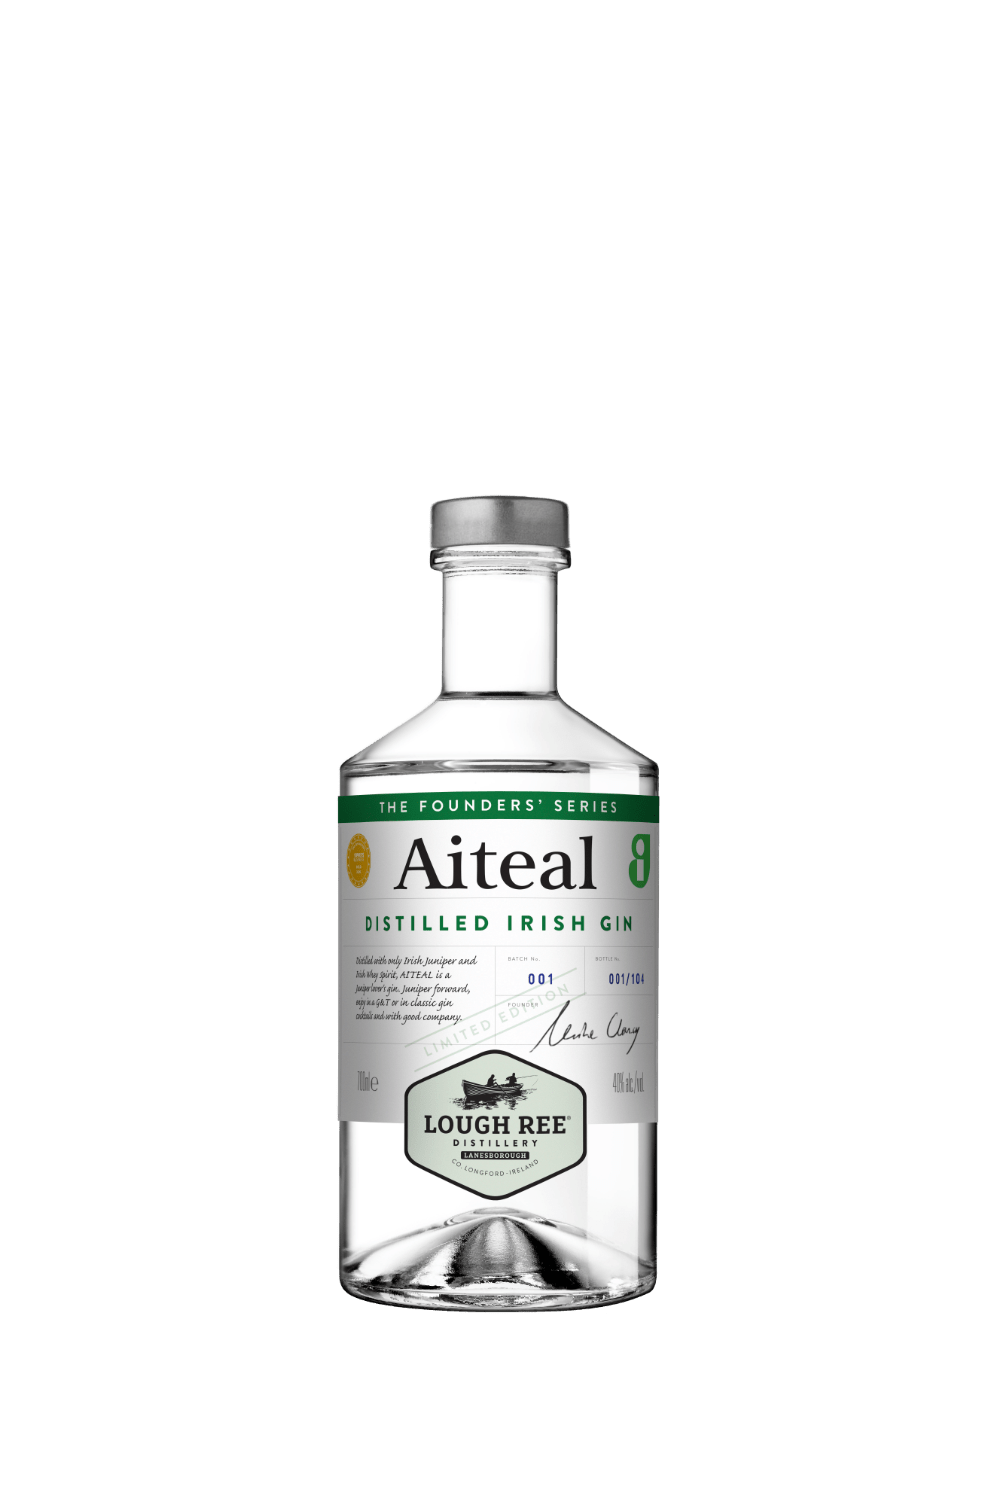 Aiteal Distilled Irish Gin